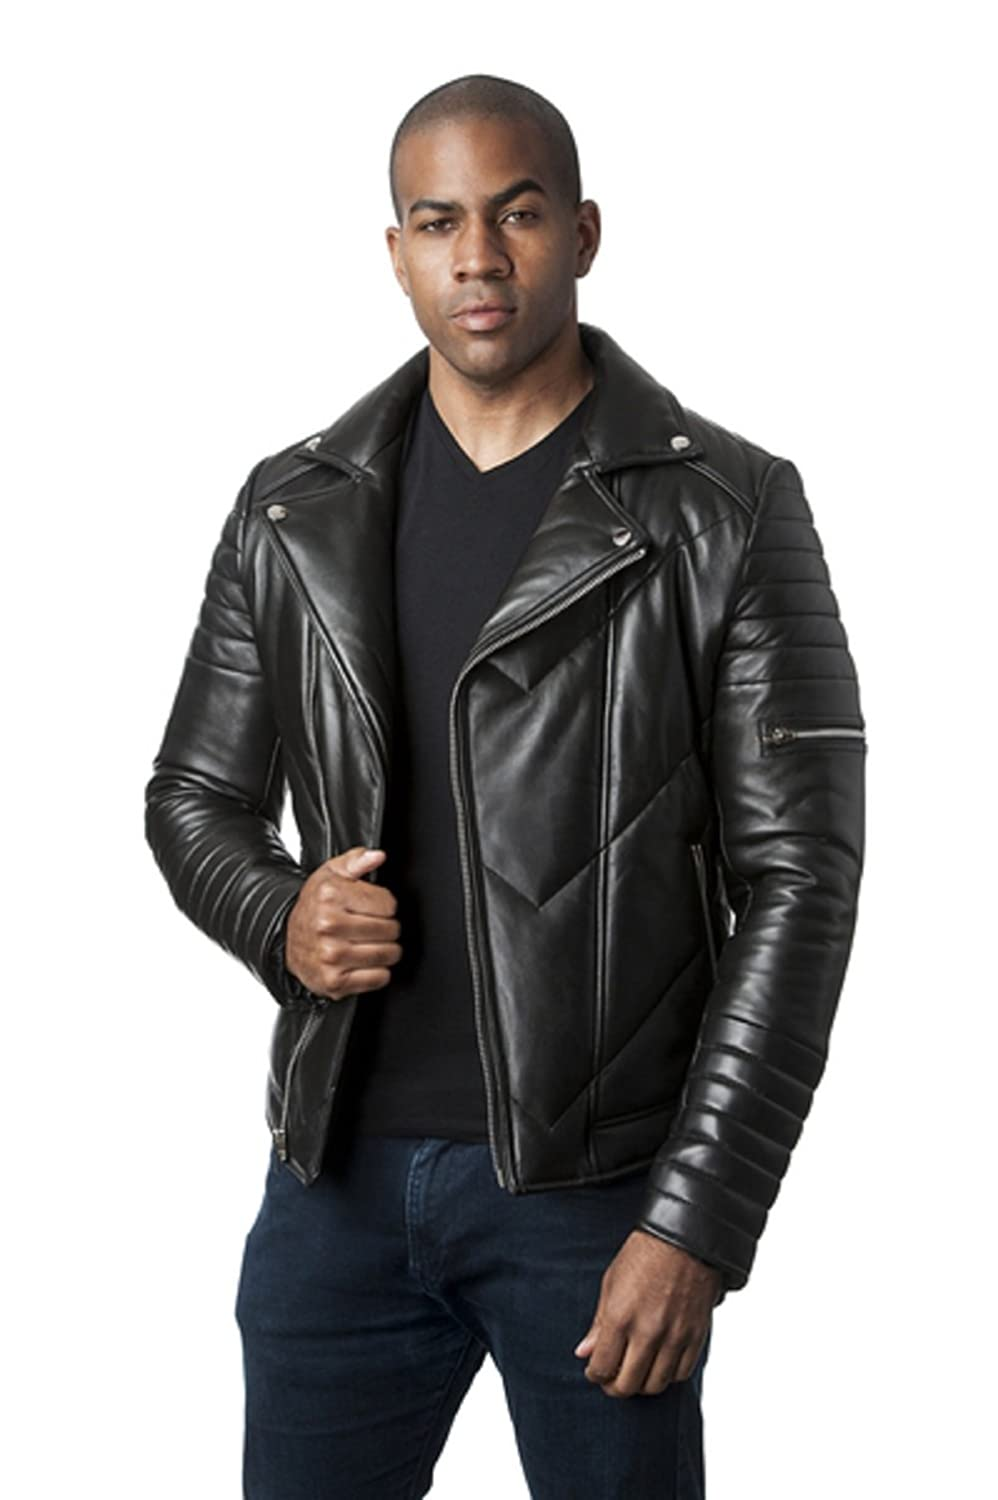 d7862fdd6 Mason & Cooper Ethan Puffer Leather Jacket at Amazon Men's Clothing ...